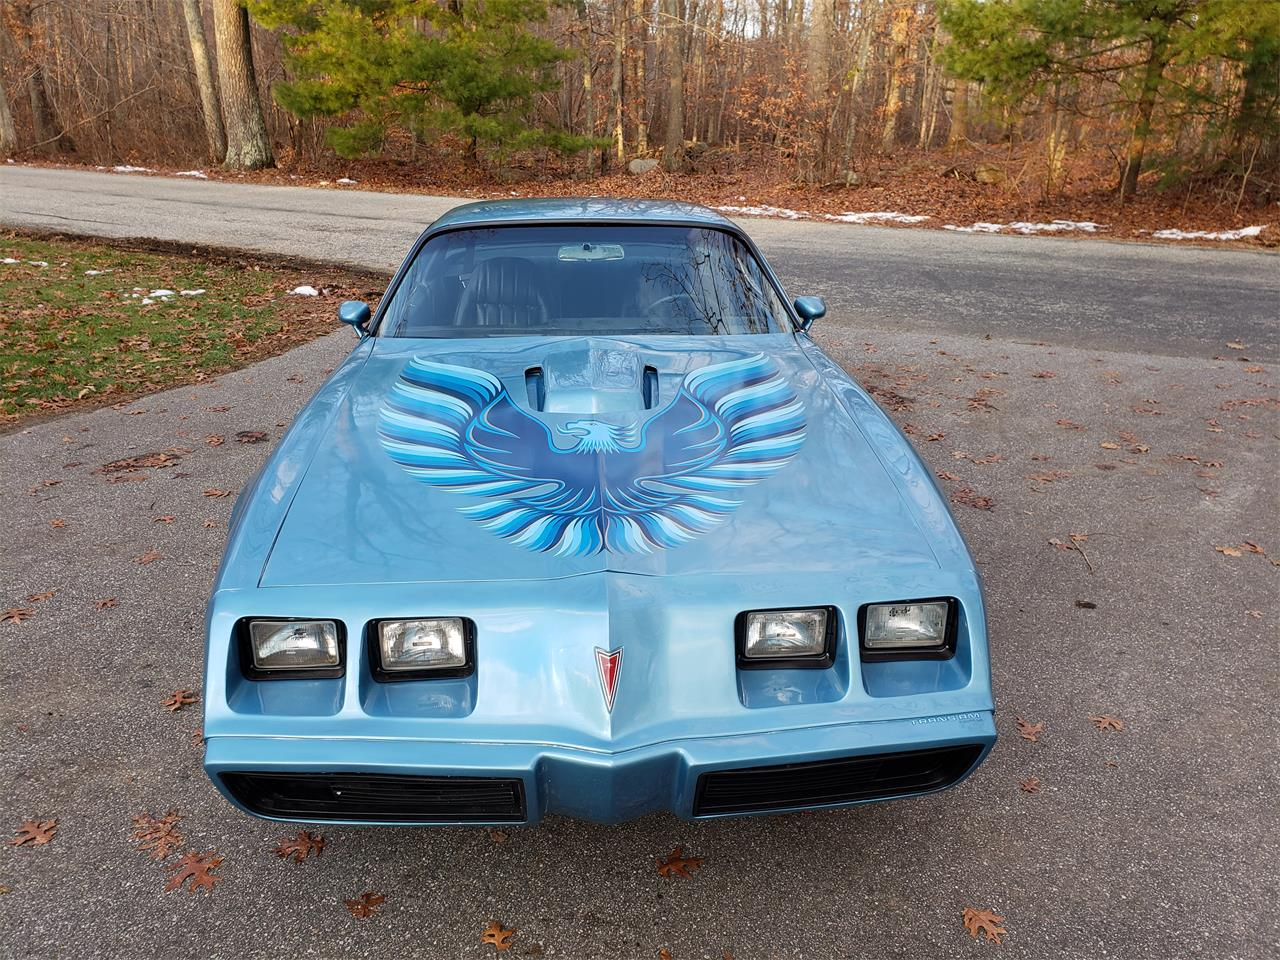 1979 Pontiac Firebird Trans Am for sale in Baltic, CT – photo 2